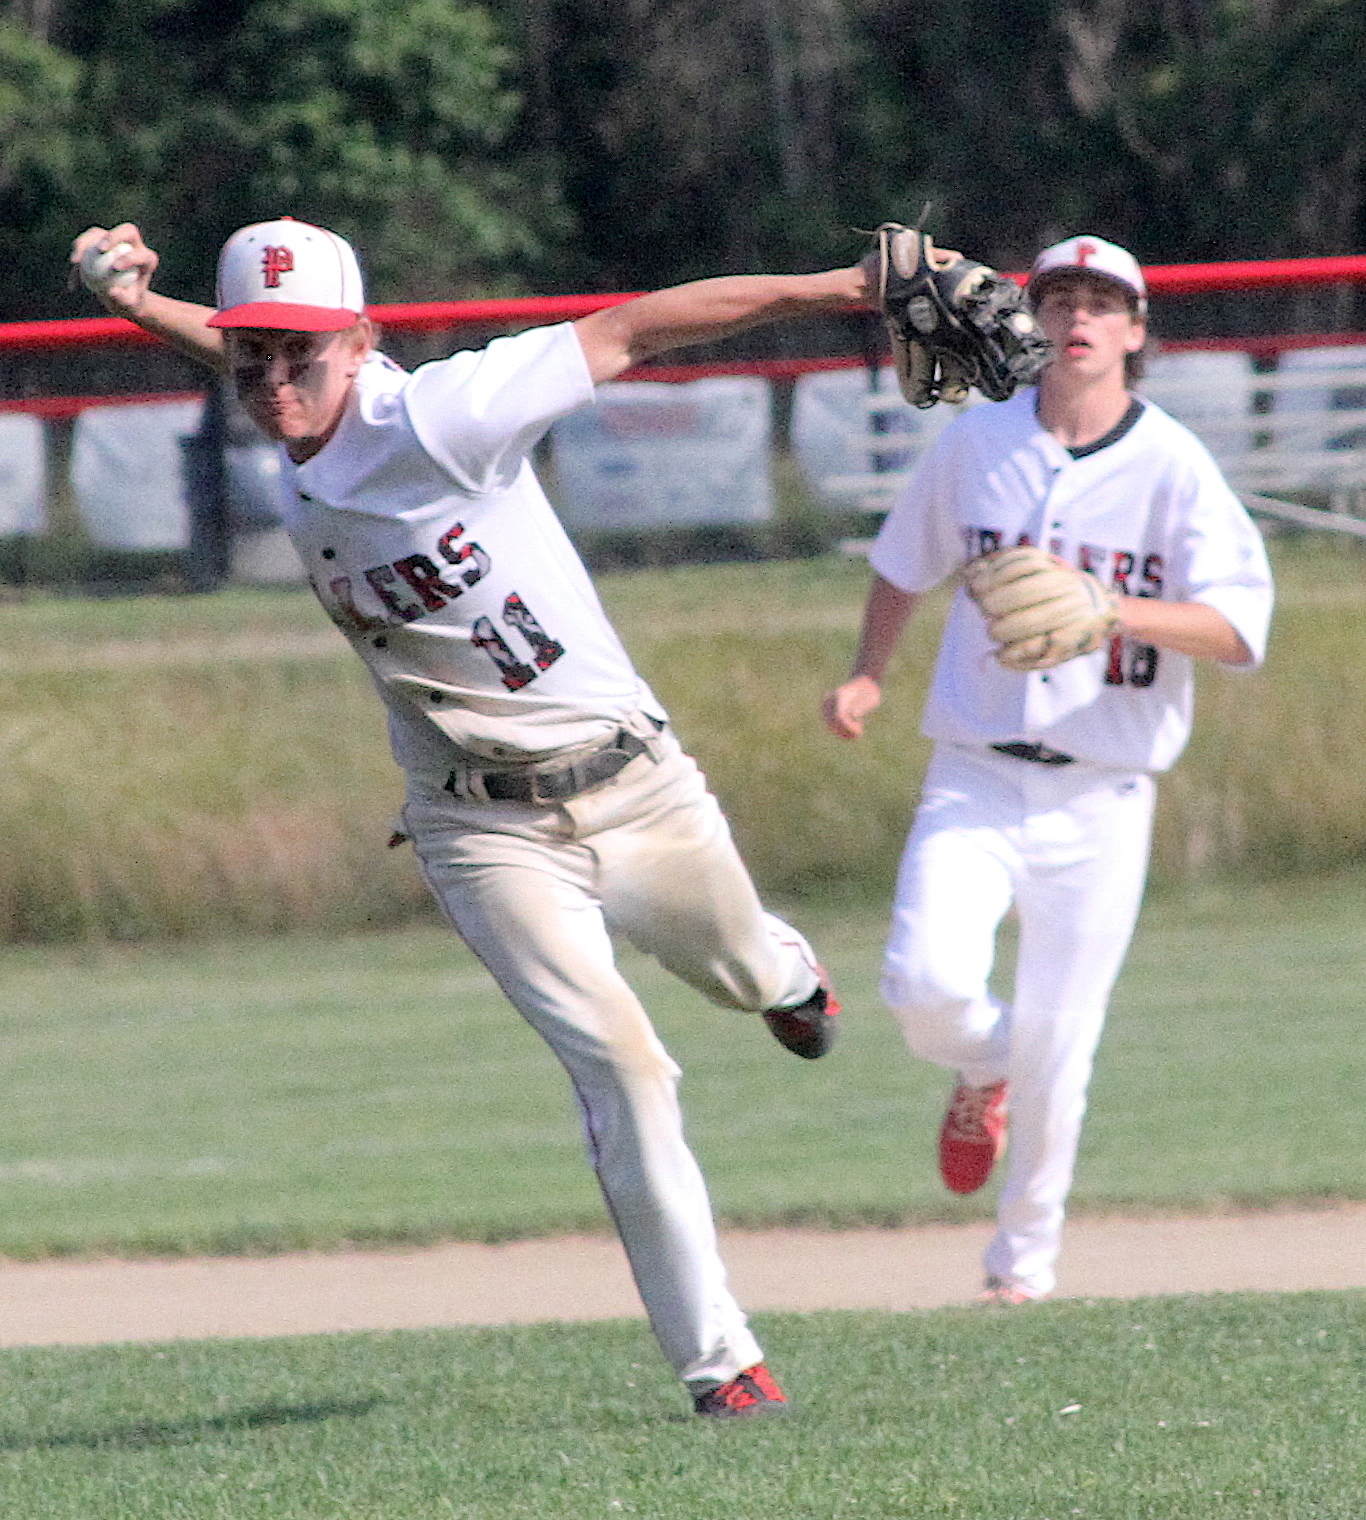 Sophomore Gavin Gilbride scoops up the ball and throws to first base. DESIRÉE KEEGAN